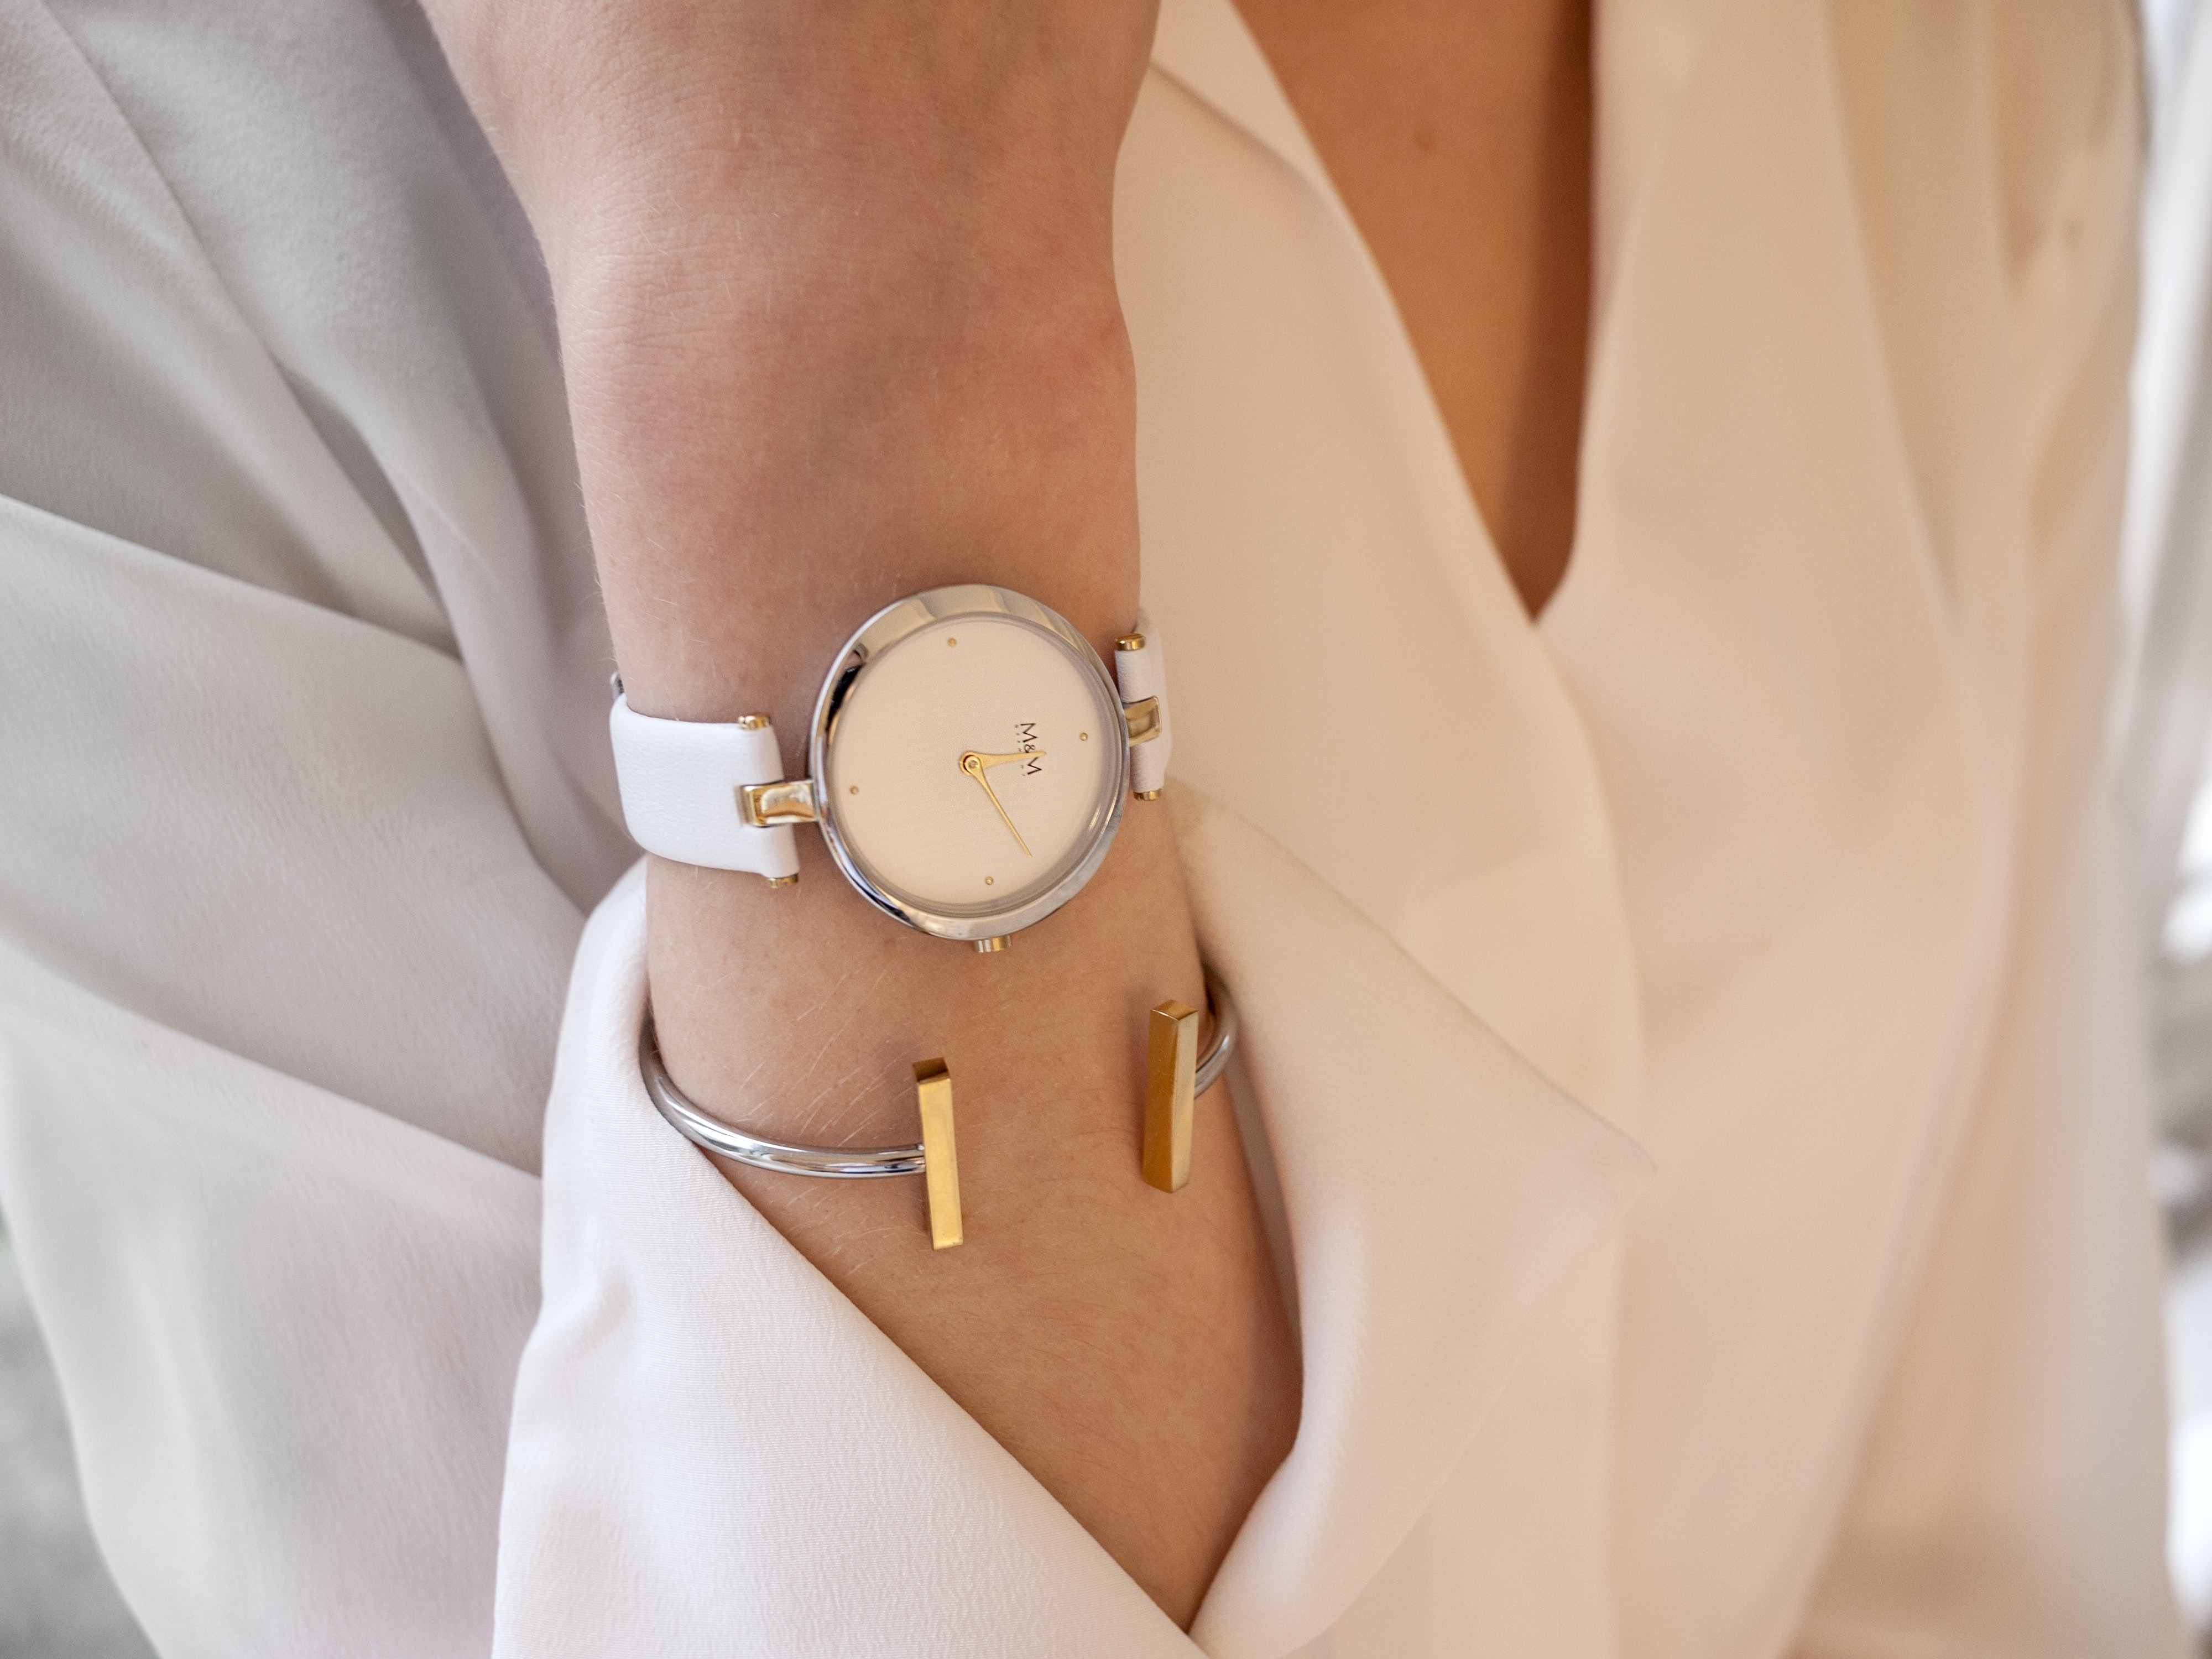 close-up photo of woman in white top wearing watch